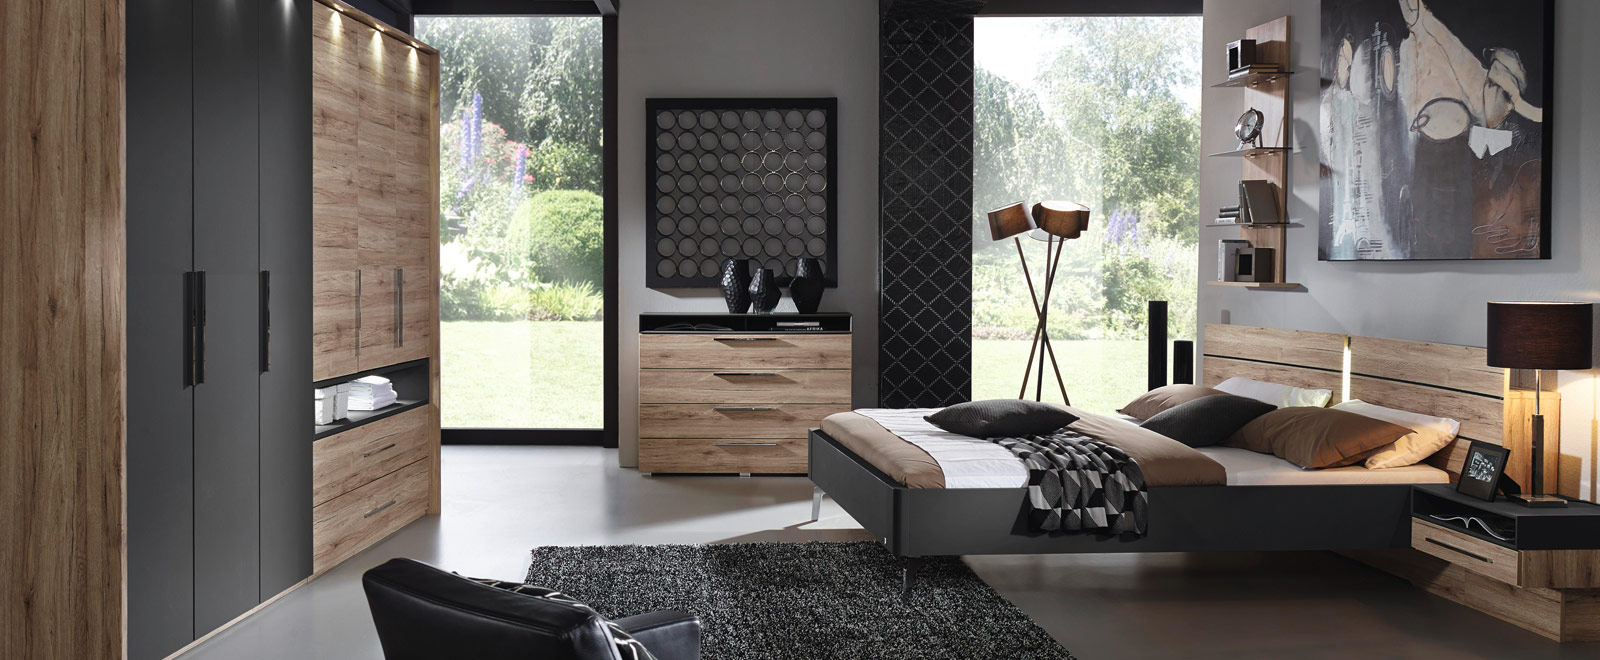 rauch m bel schlafzimmer. Black Bedroom Furniture Sets. Home Design Ideas